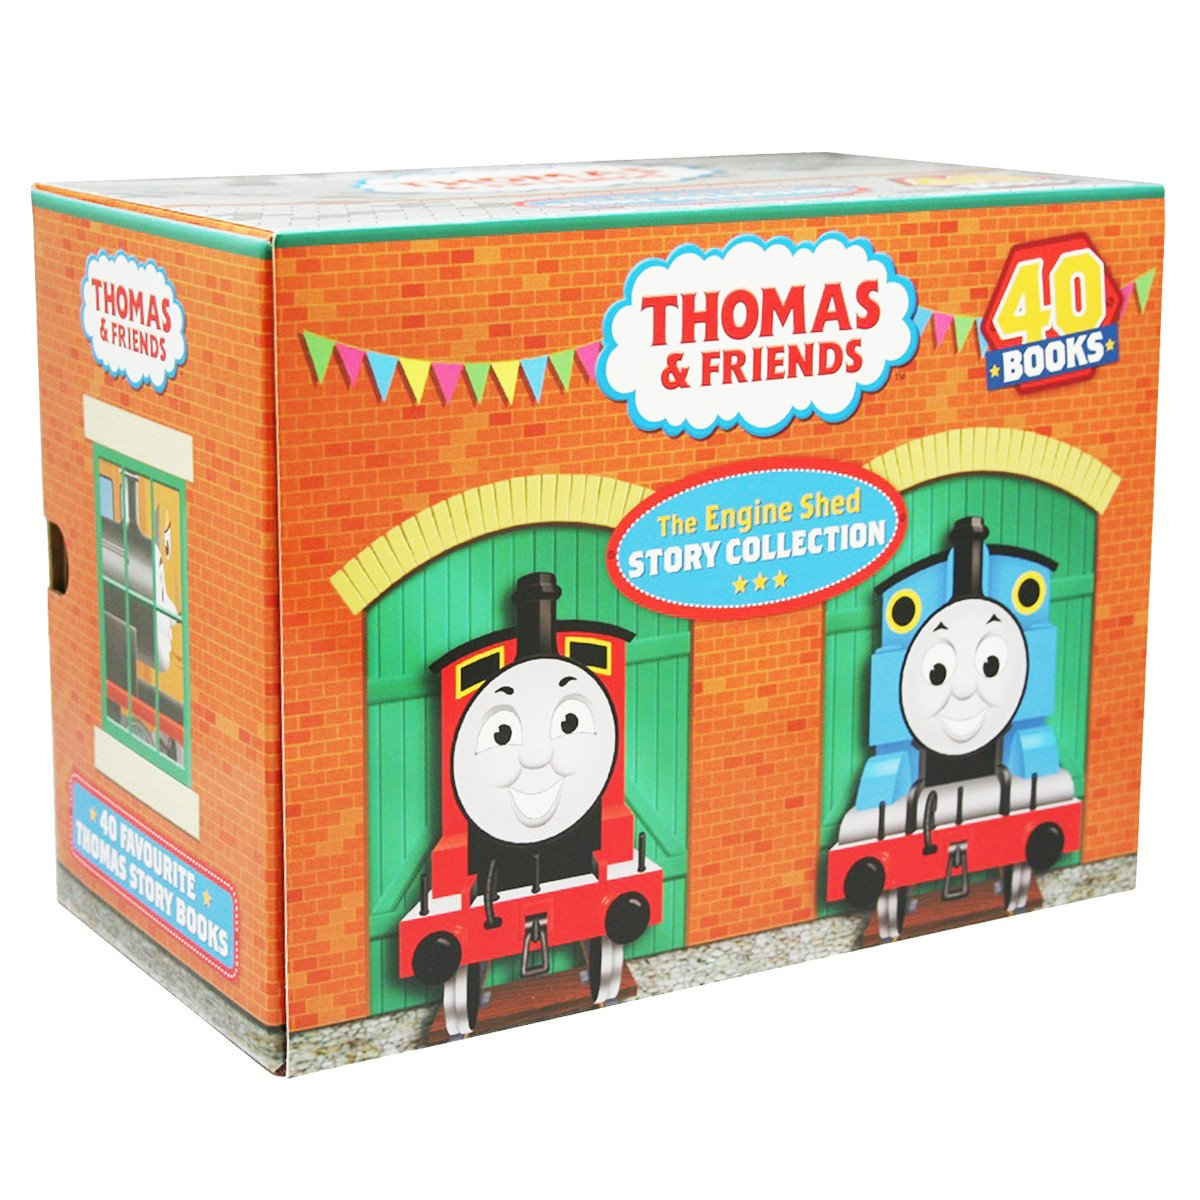 Thomas Story Library Collection: 40-book setThomas Story Library Collection: 40-book set by Thomas & Friends, ISBN: 9780603572807